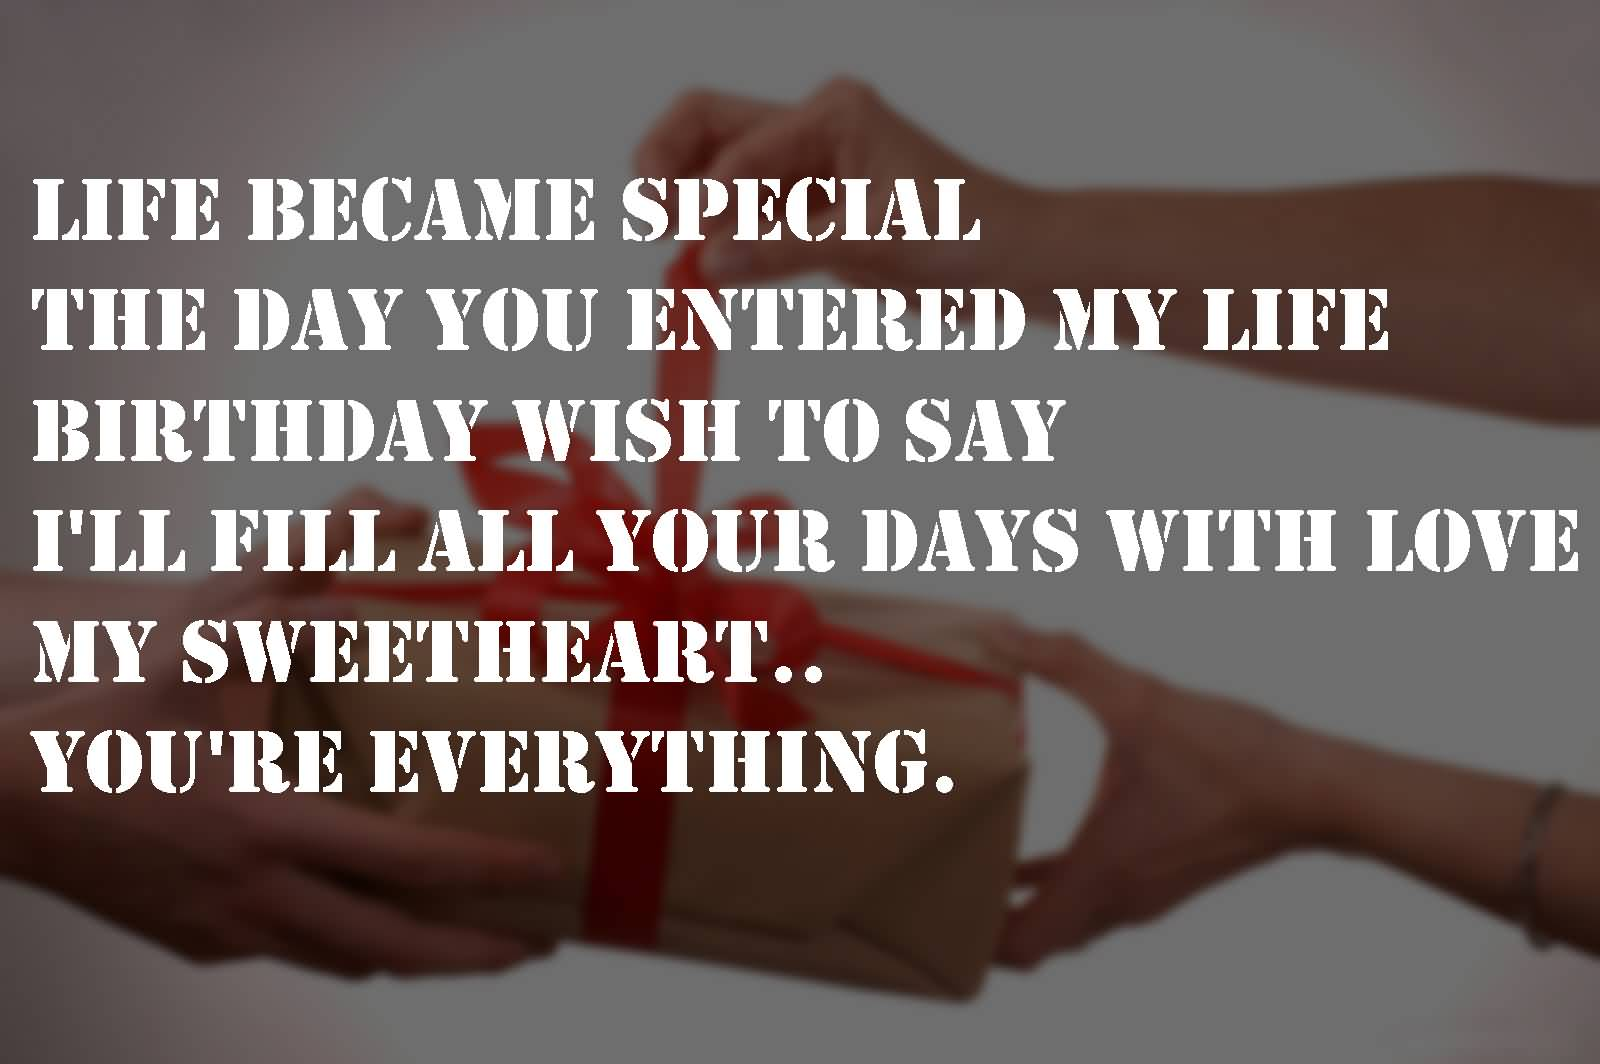 Life become special the day you for my lovely Boyfriend wishes amazing blessings